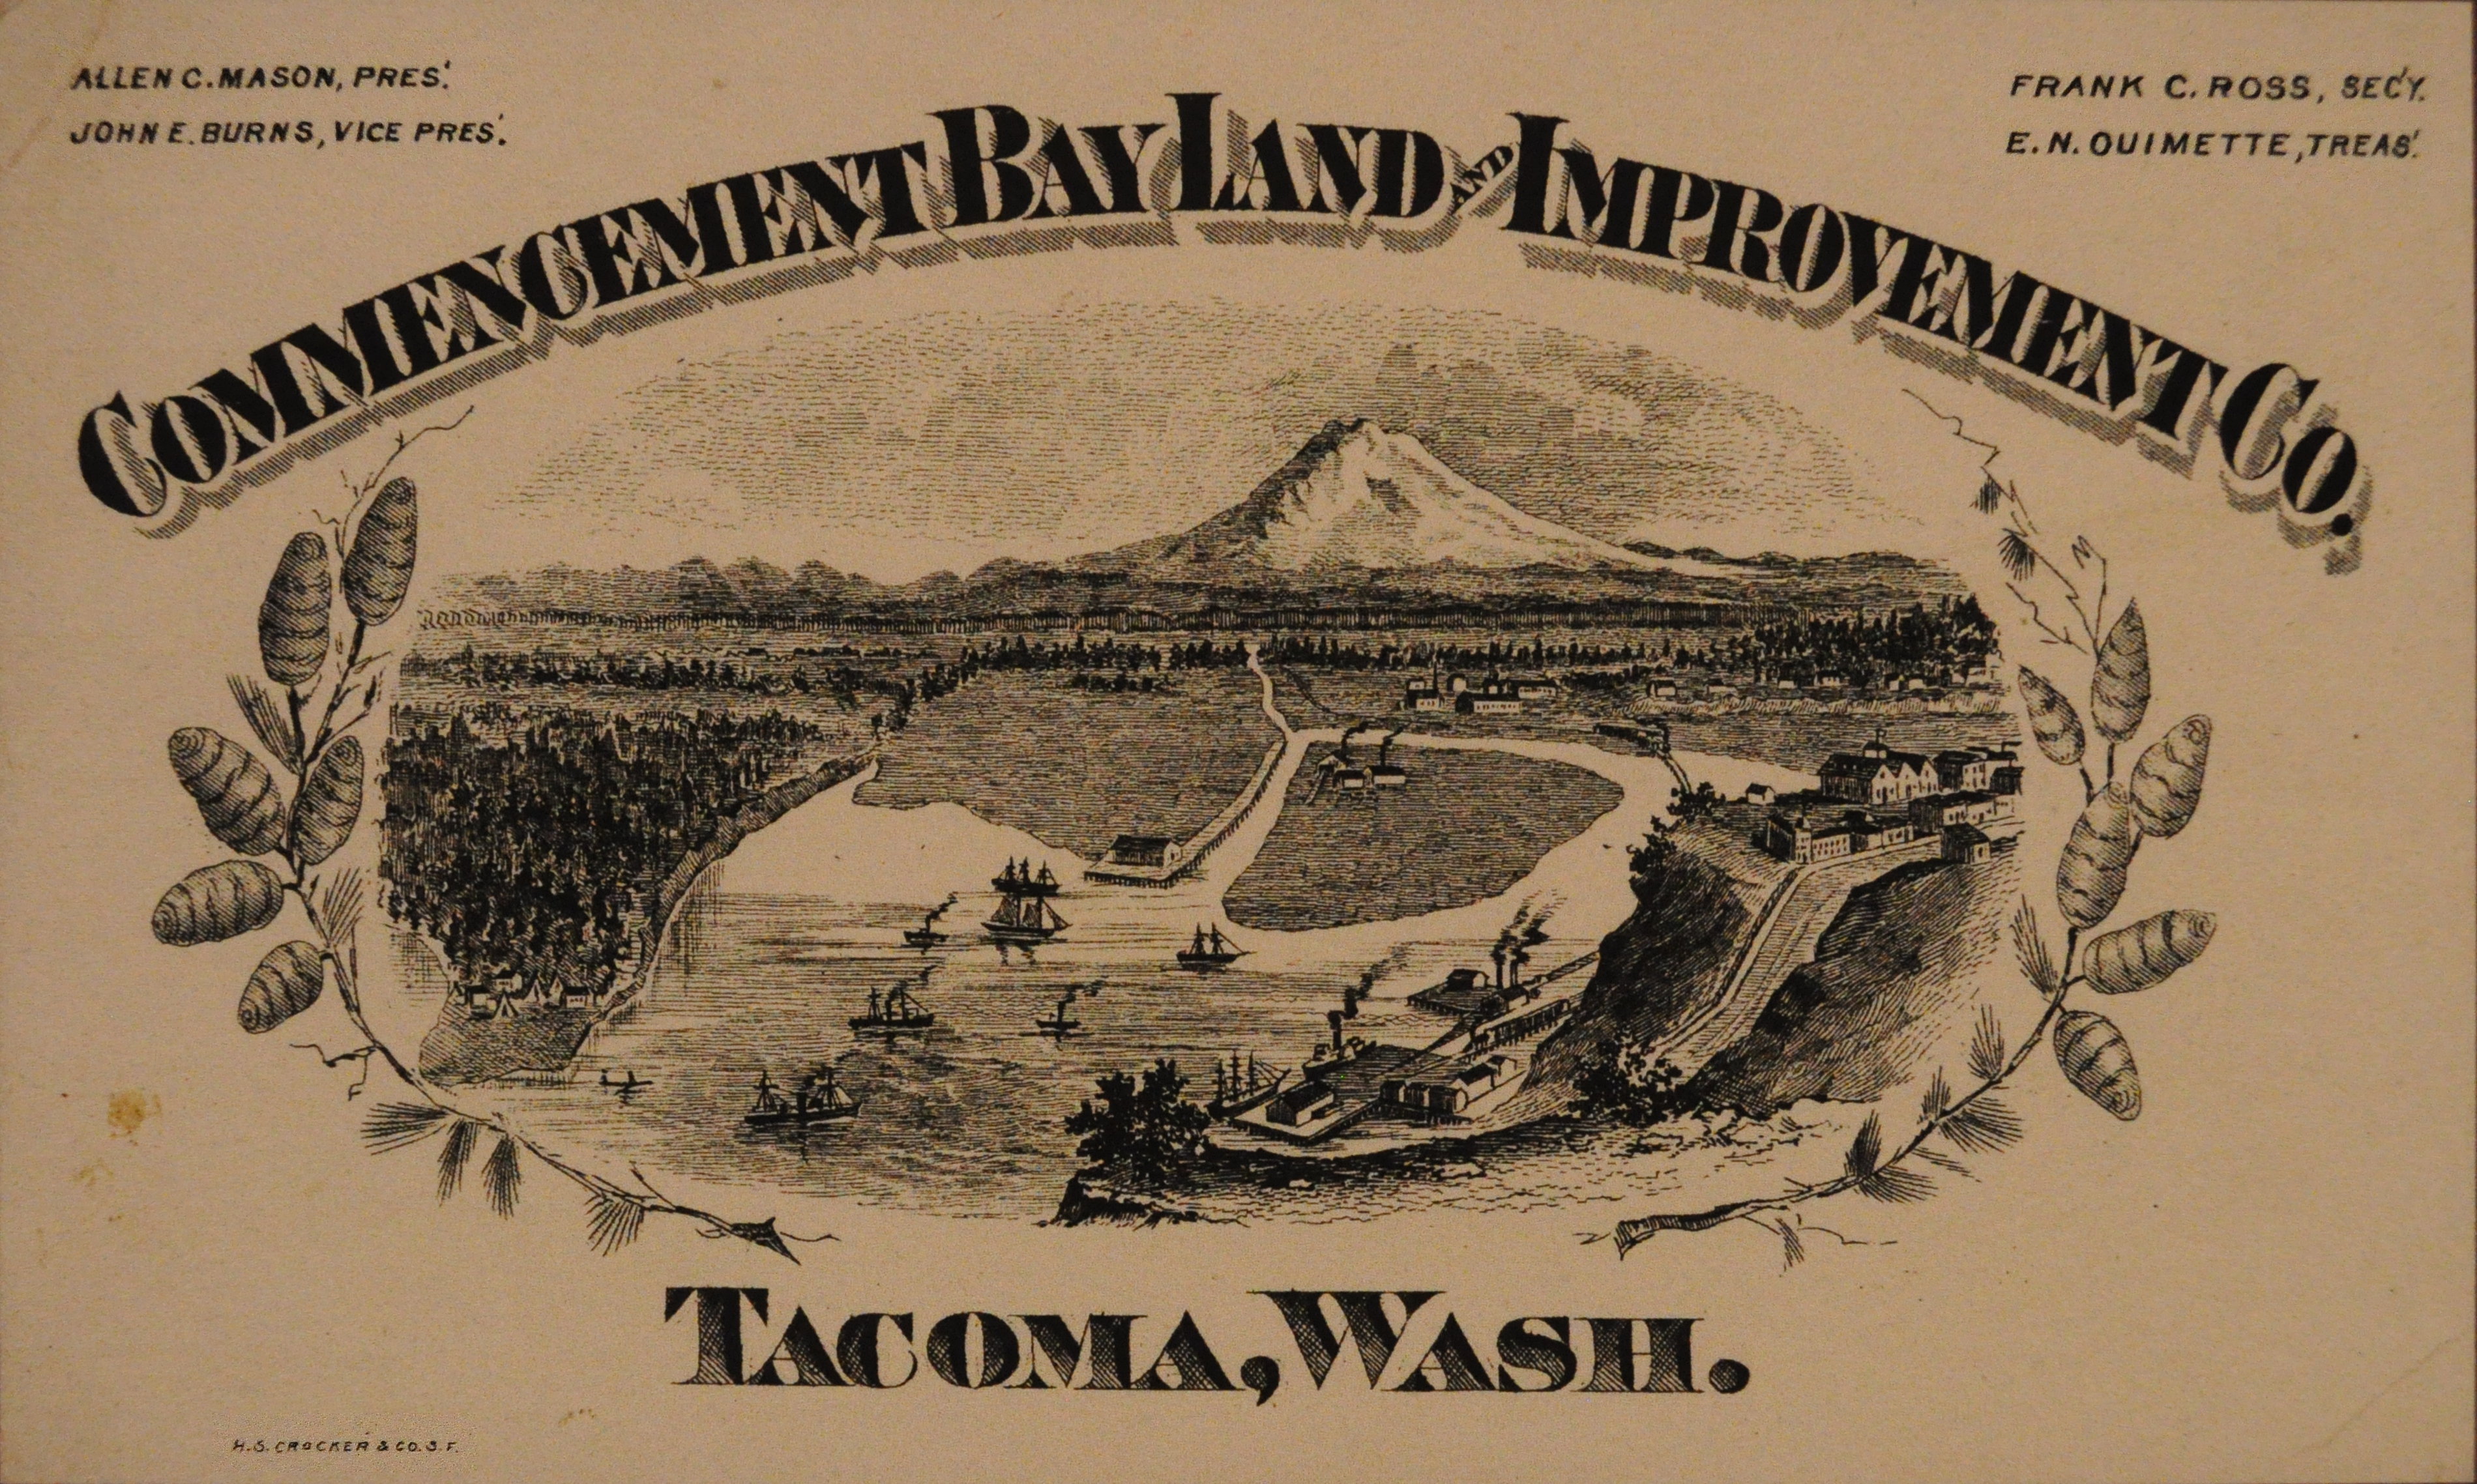 File:Commencement Bay Land Improvement Co. business card.jpg ...